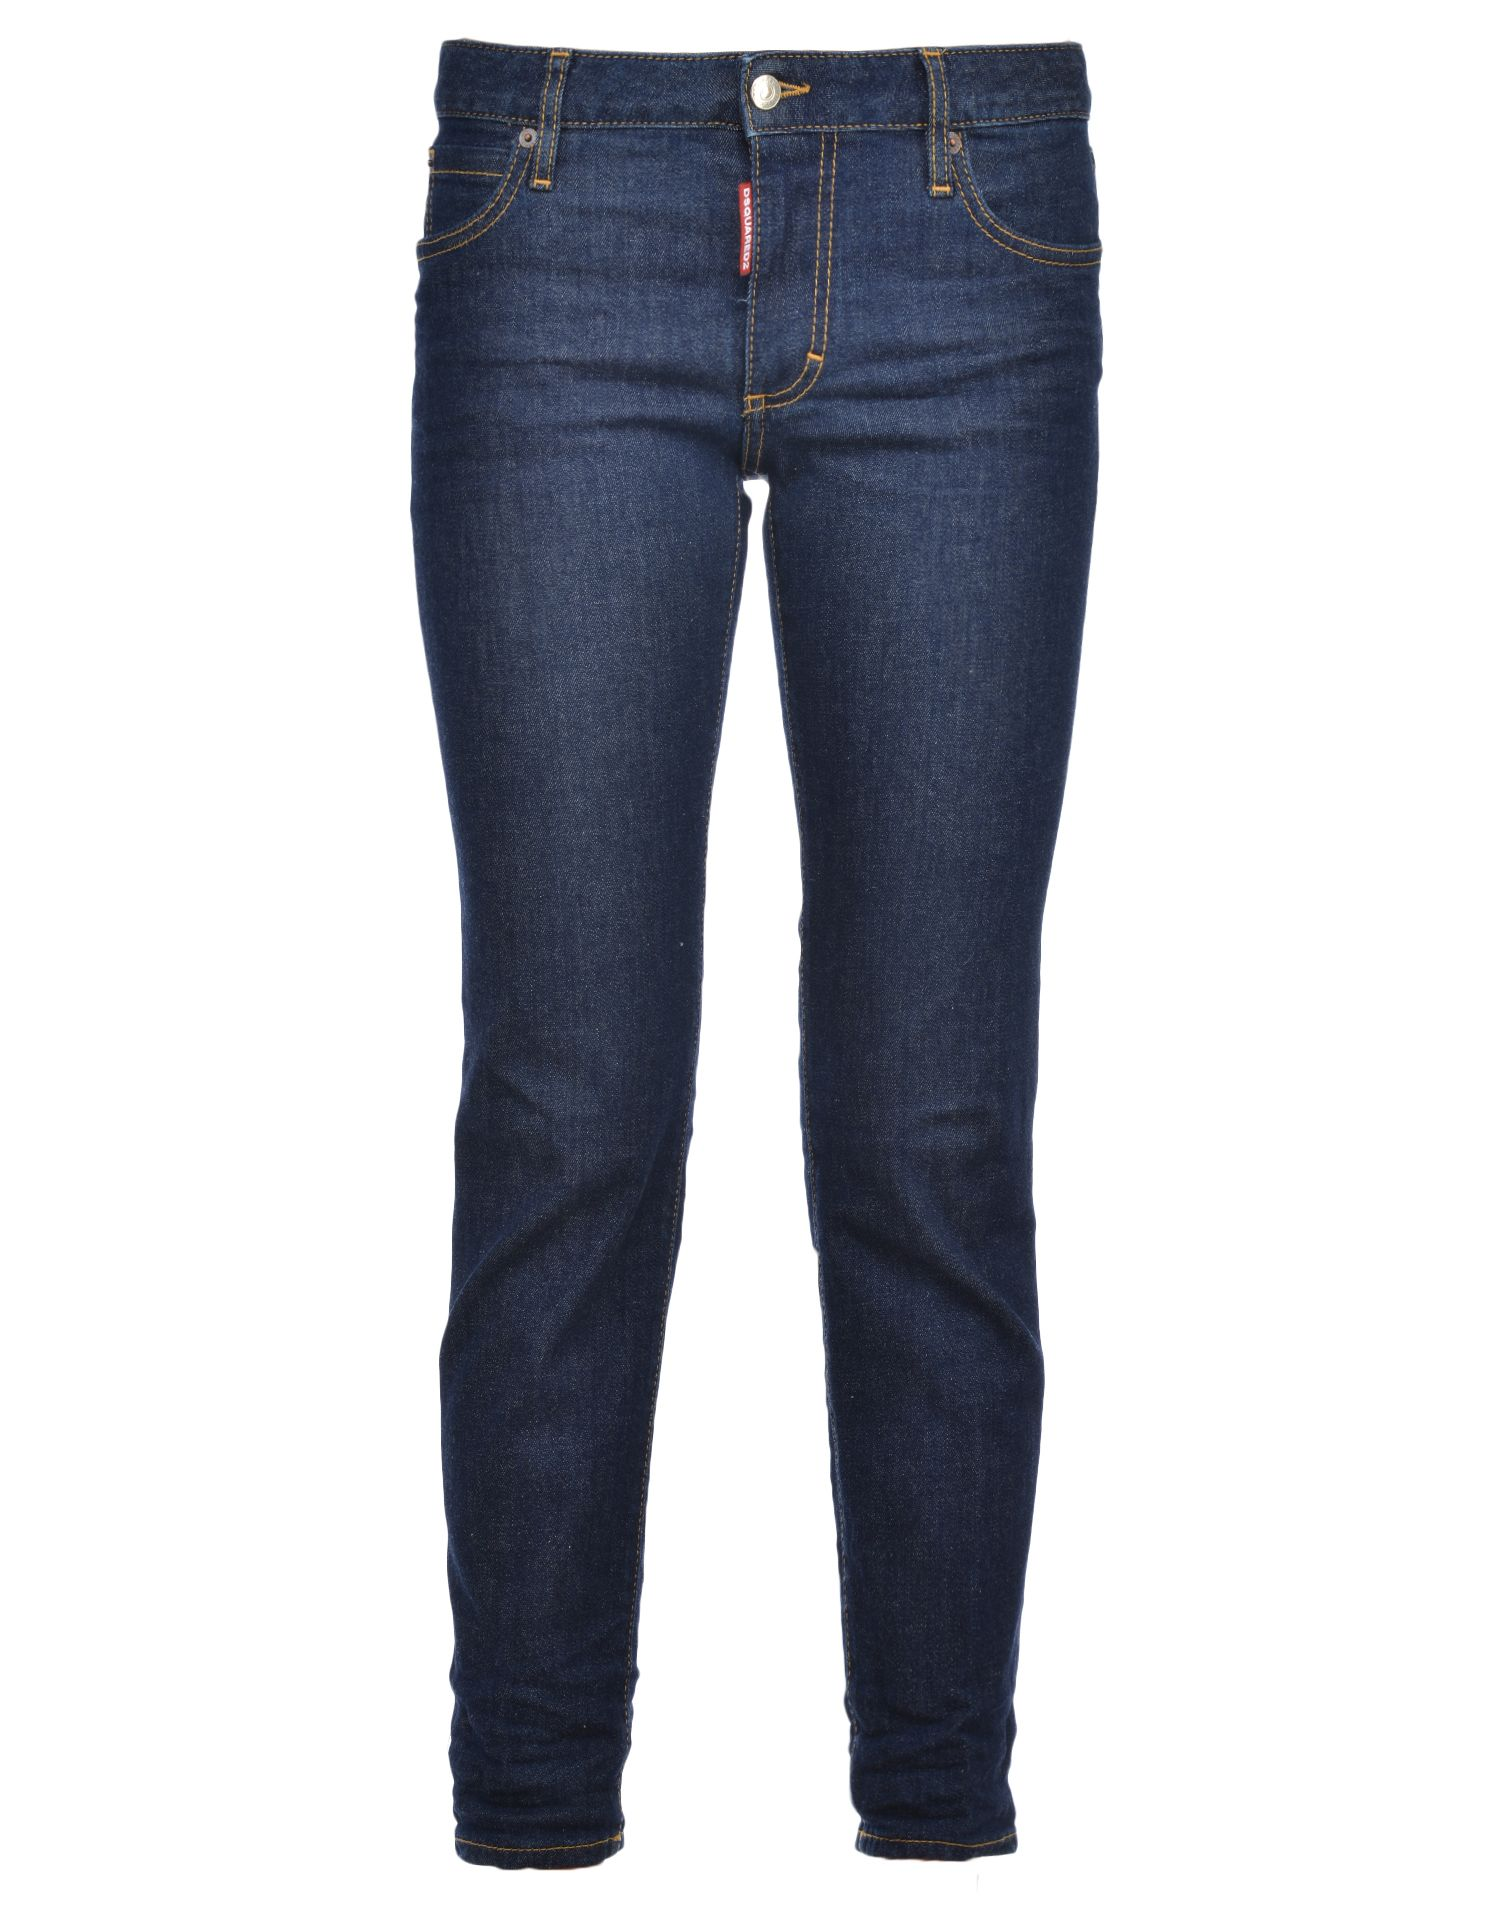 Cropped Twiggy Jeans, Navy